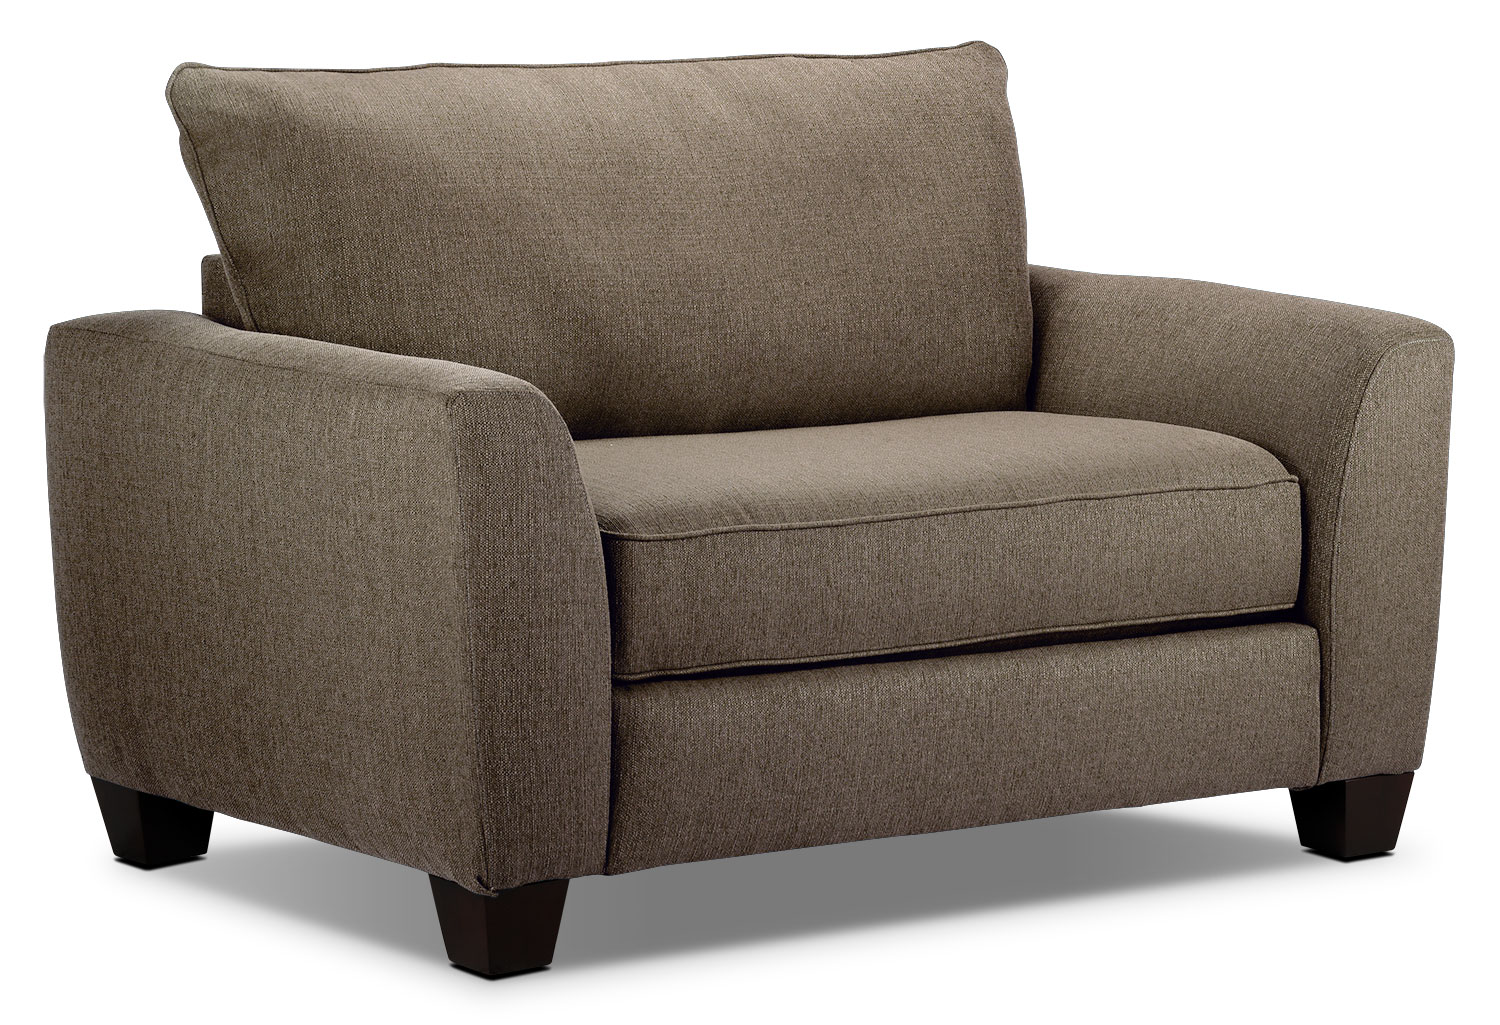 one and a half chair canada comfy lounge heritage nutmeg leon 39s